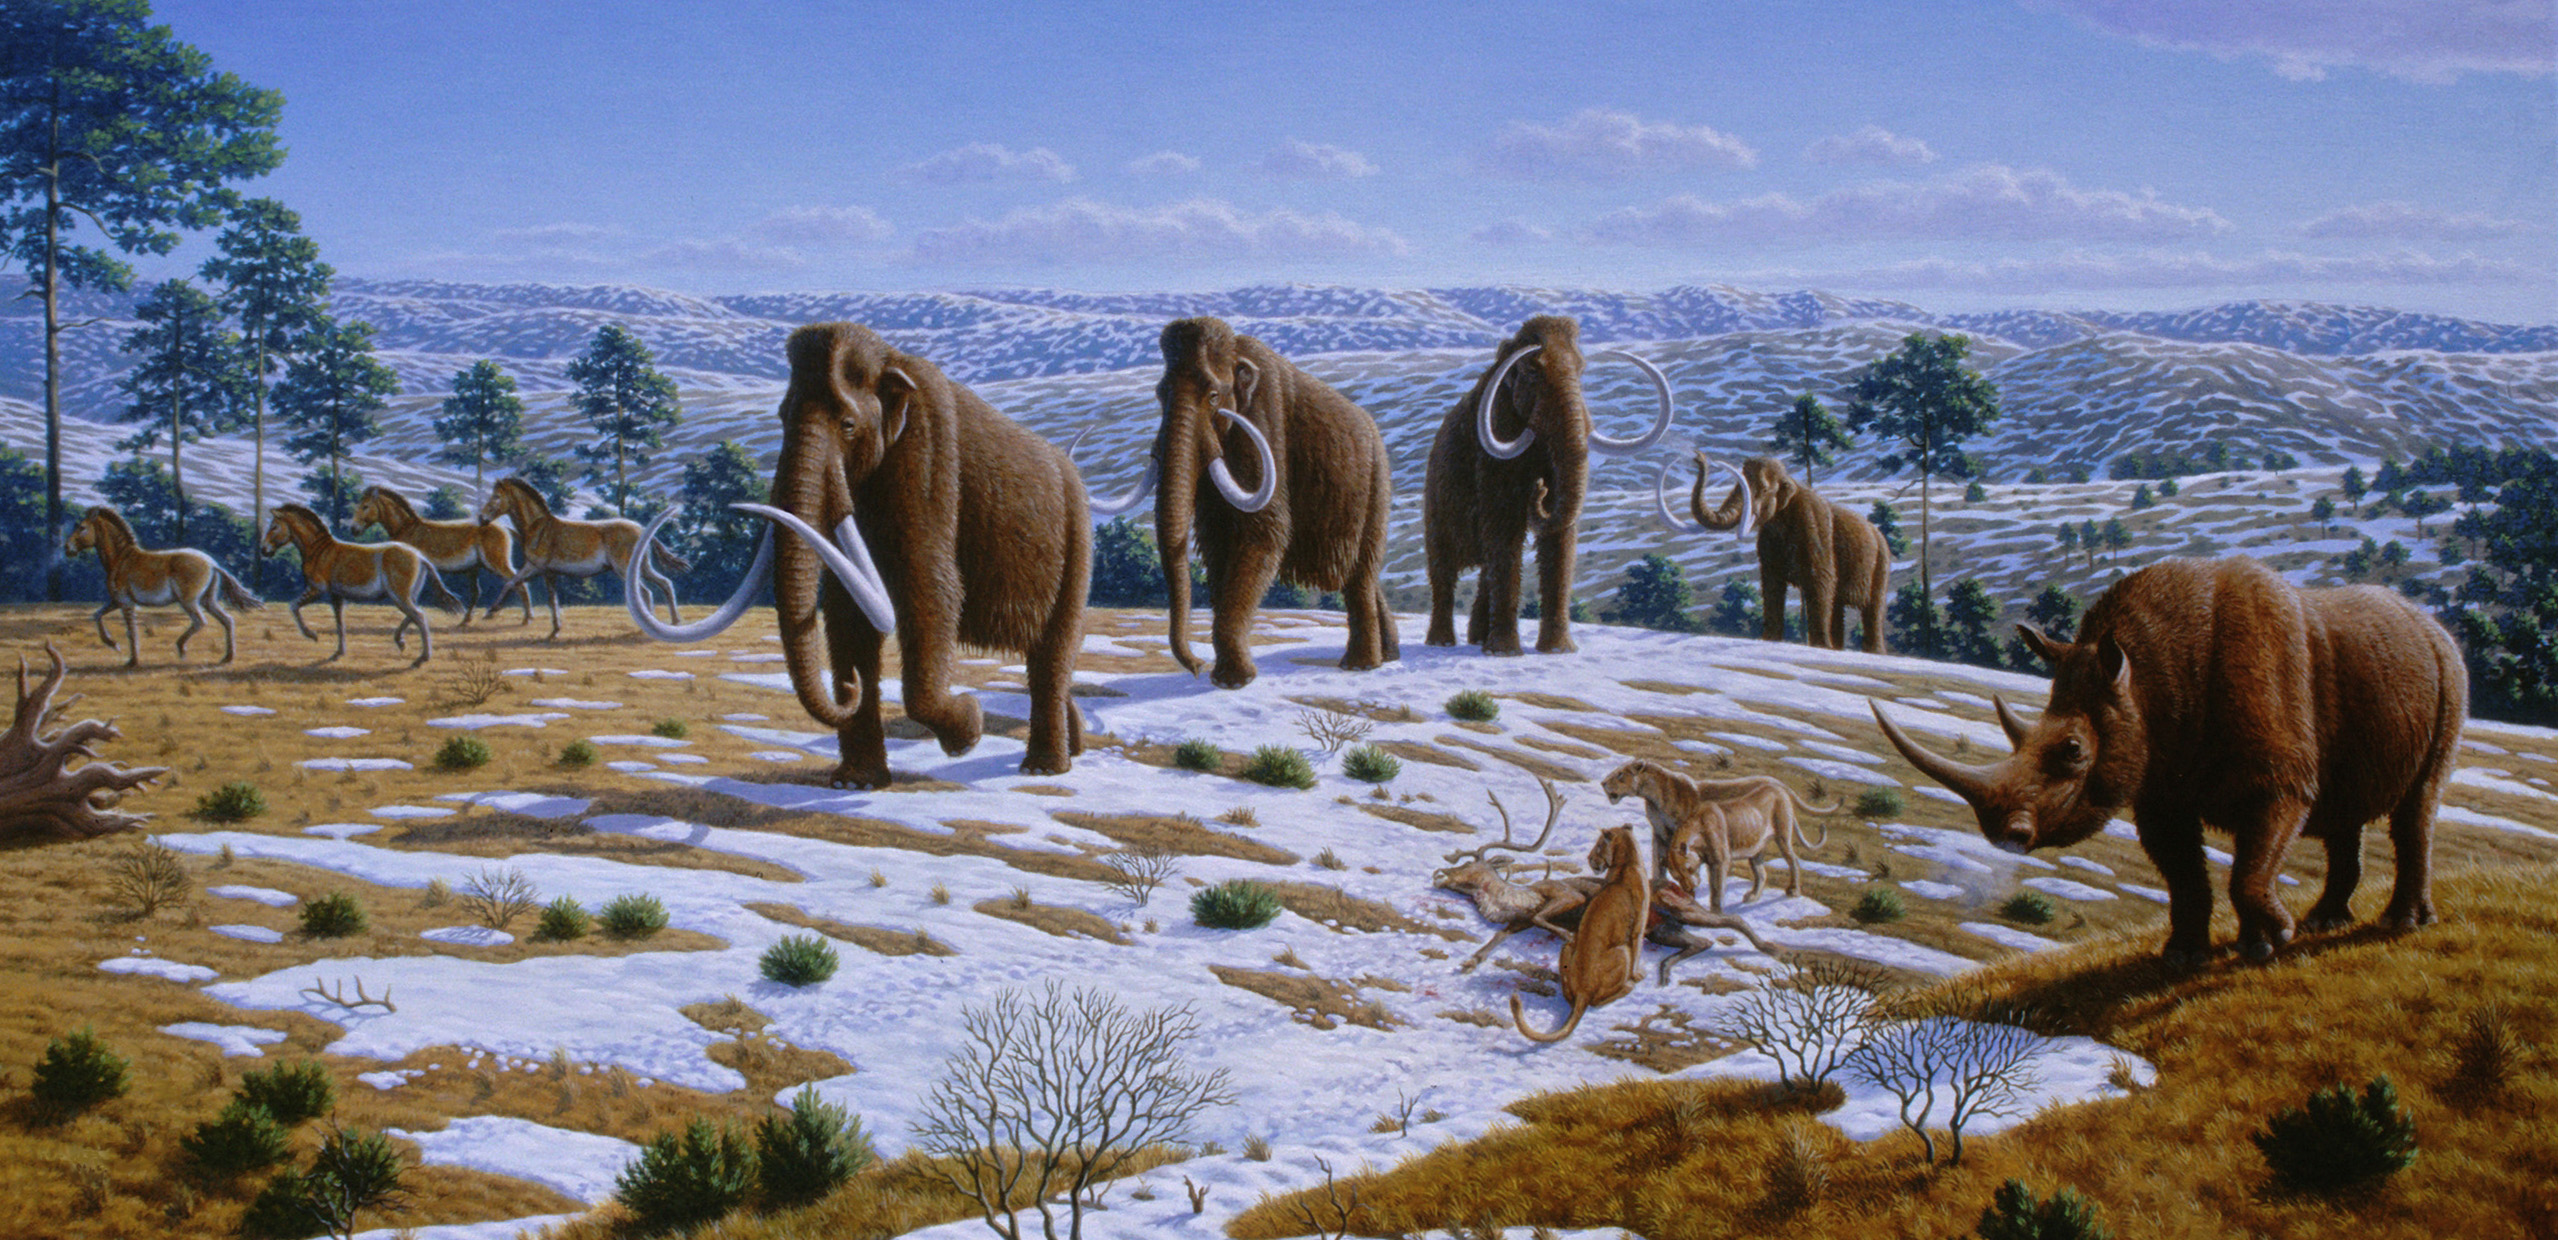 Artist's impression of a late Pleistocene landscape with woolly mammoths, equids, a woolly rhinoceros, and European cave lions.